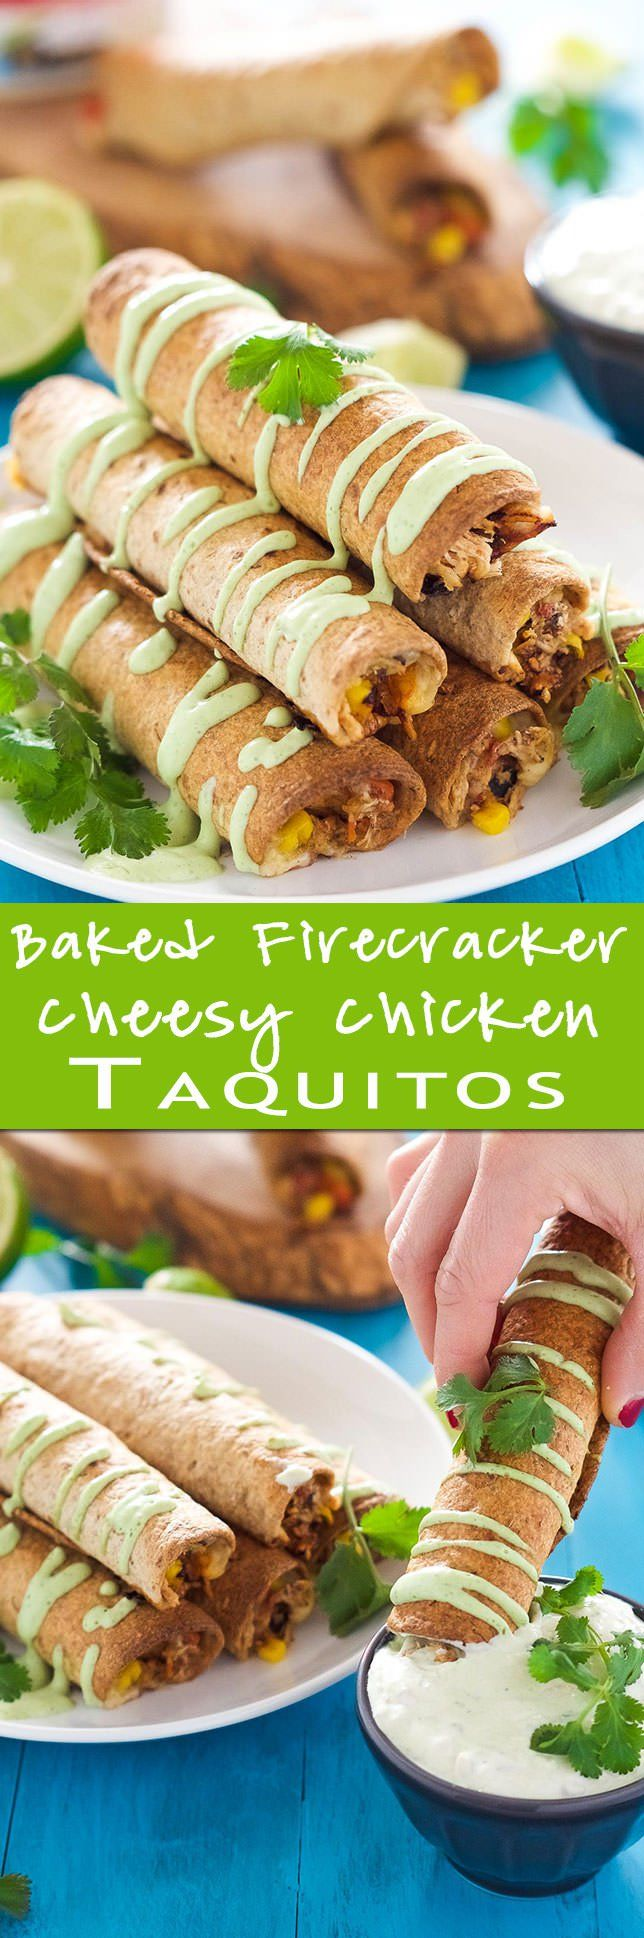 Cheesy Firecracker Baked Chicken Taquitos are a healthier alternative to their store bought sidekicks! Filled with gooey spicy cheese corn chicken and peppers they are super crispy thanks to a quick bake in the oven!: